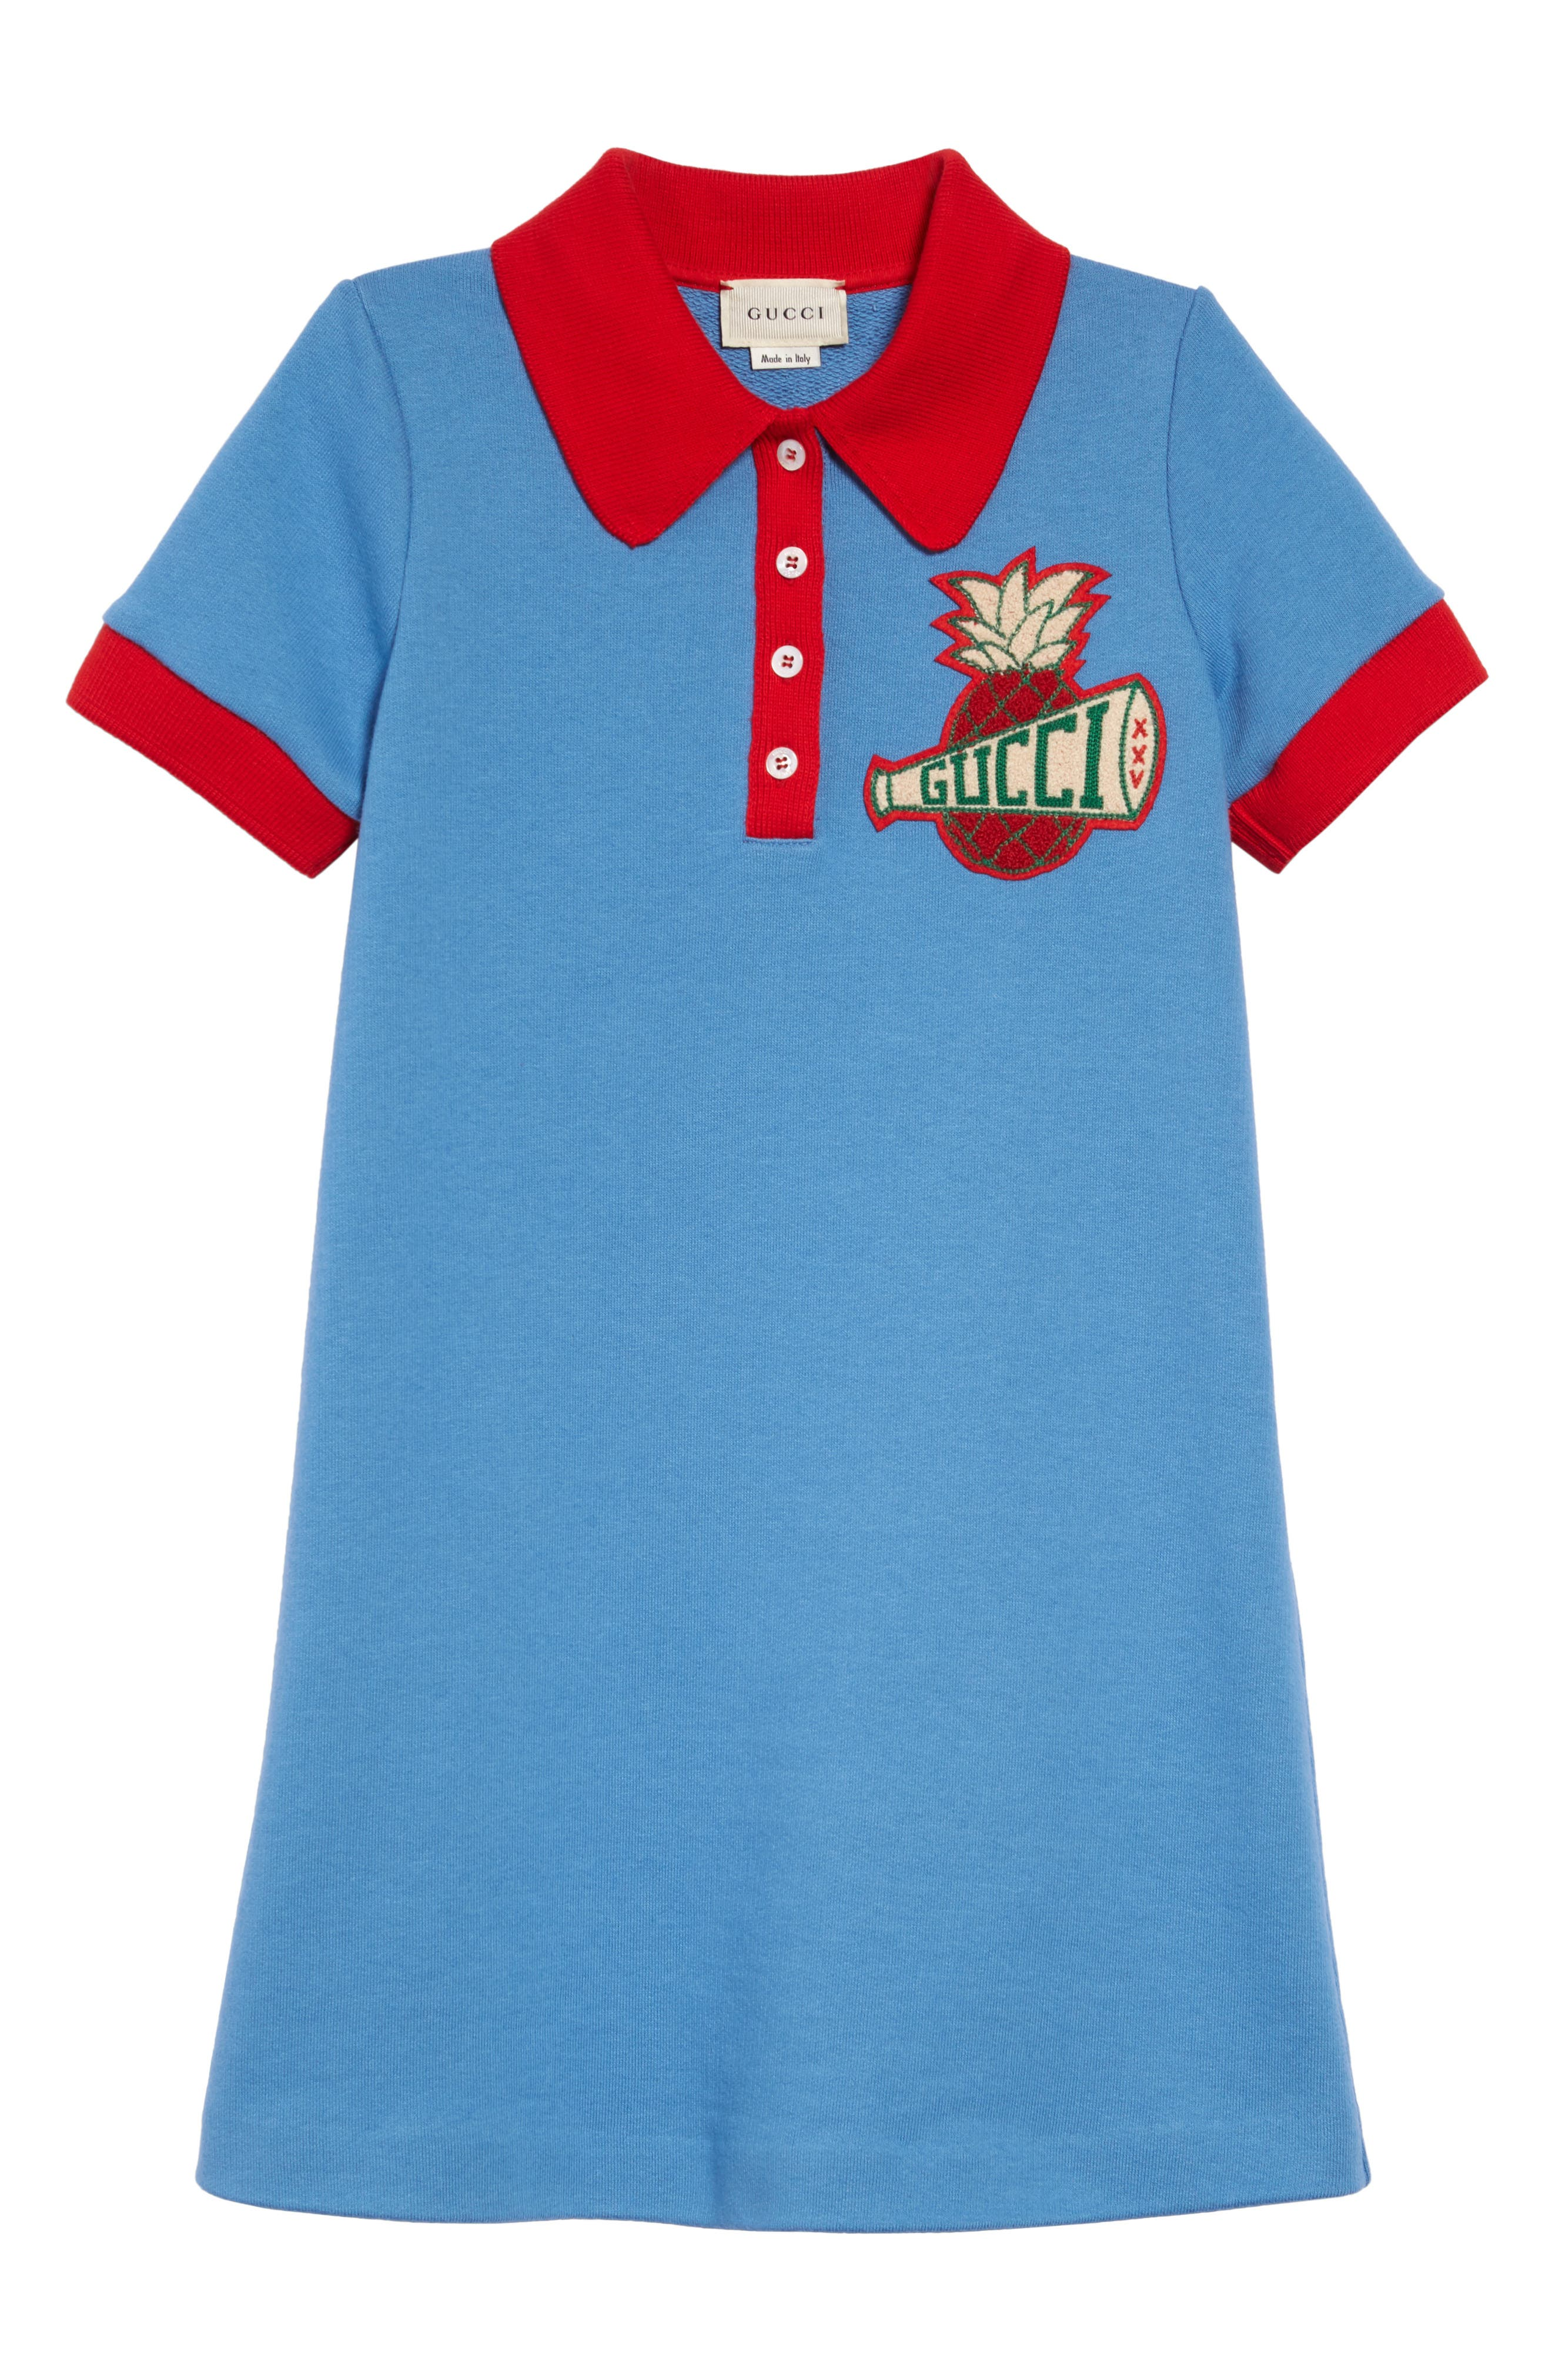 Girls Gucci Embroidered Polo Dress Size 4Y  Blue